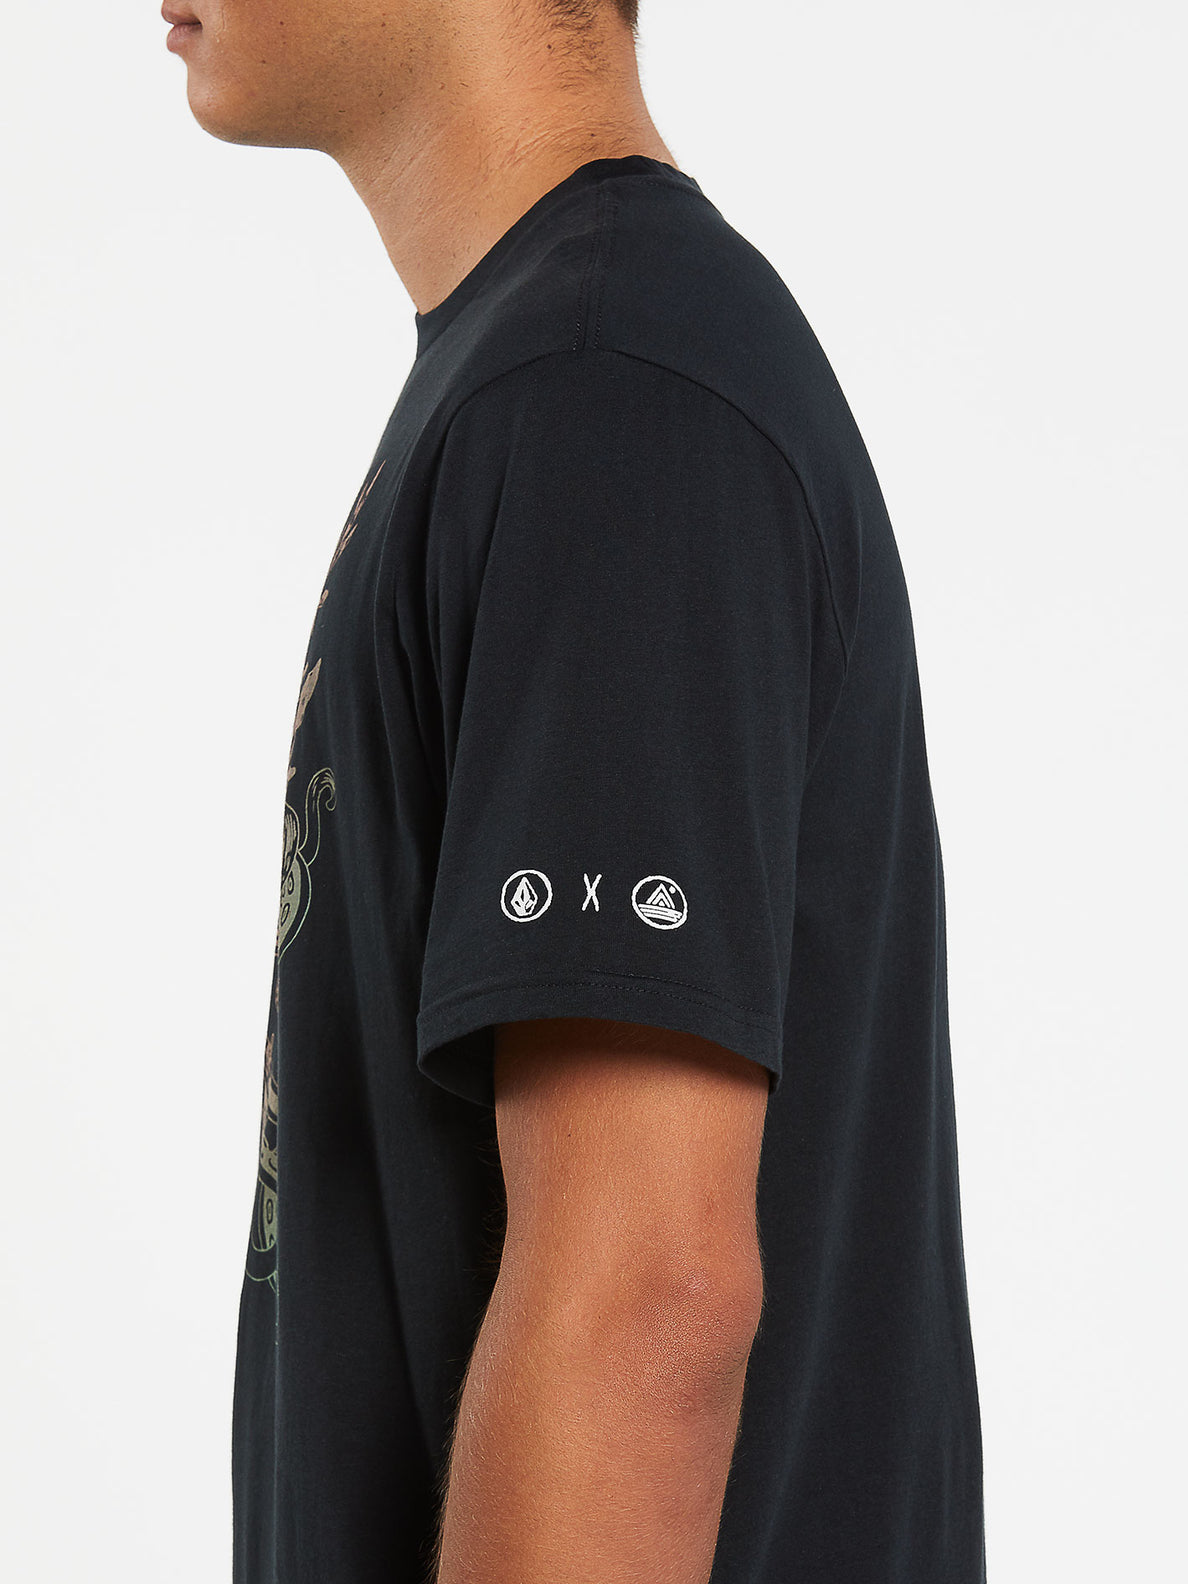 PangeaSeed Short Sleeve Tee - Black (A5032007_BLK) [1]